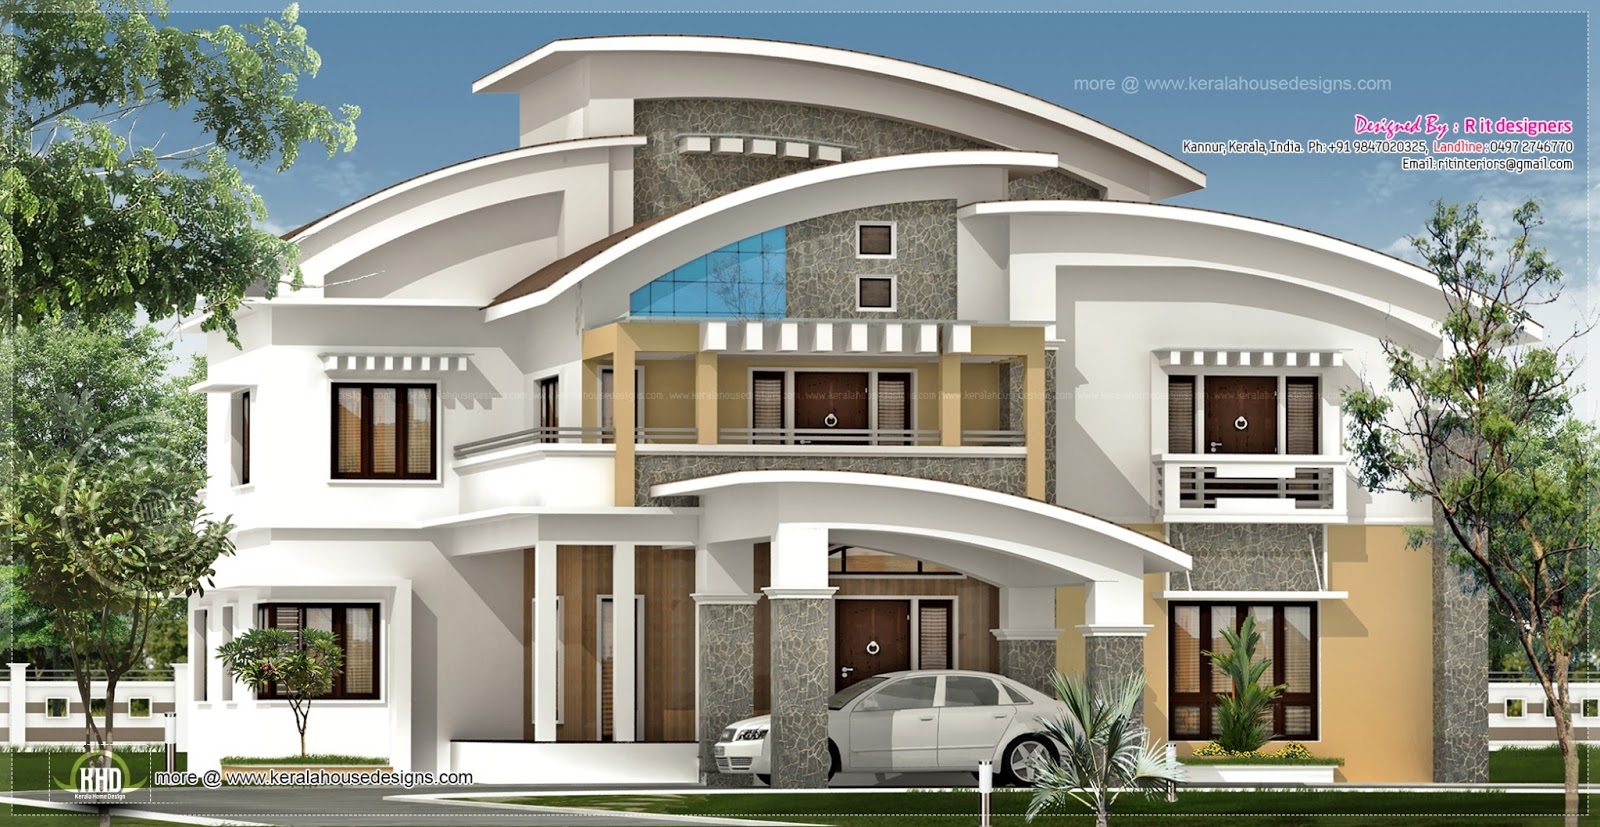 Luxury Home Entrance 3750 Square Feet Luxury Villa Exterior Home Kerala Plans